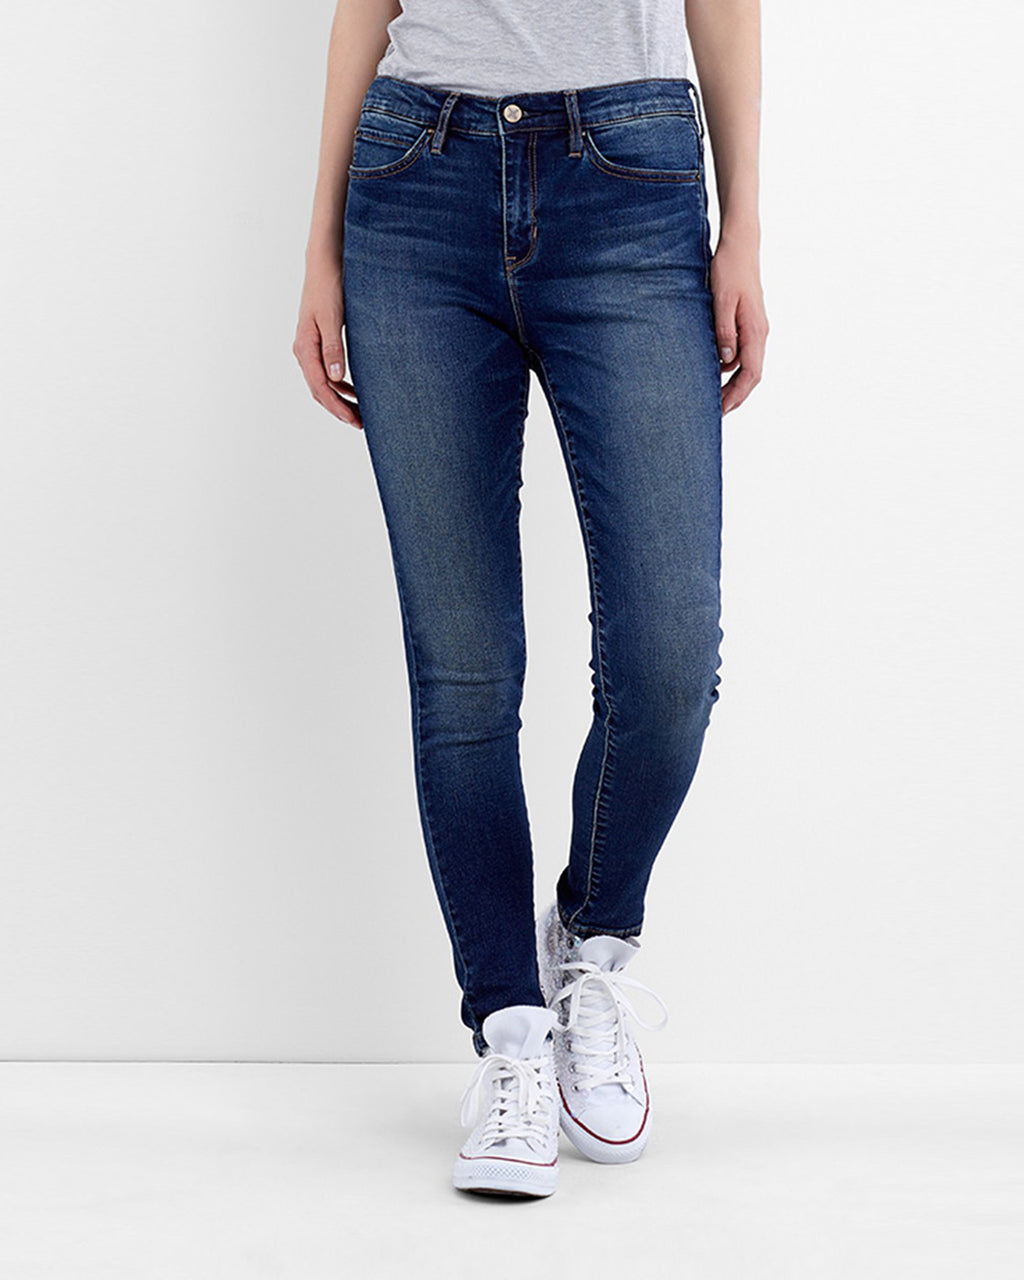 VJ0131R - SOHO HIGH RISE SKINNY - bottoms - denim - These high rise skinny jeans are finished in a faded denim wash in a classic fit. These jeans are your new go-to.